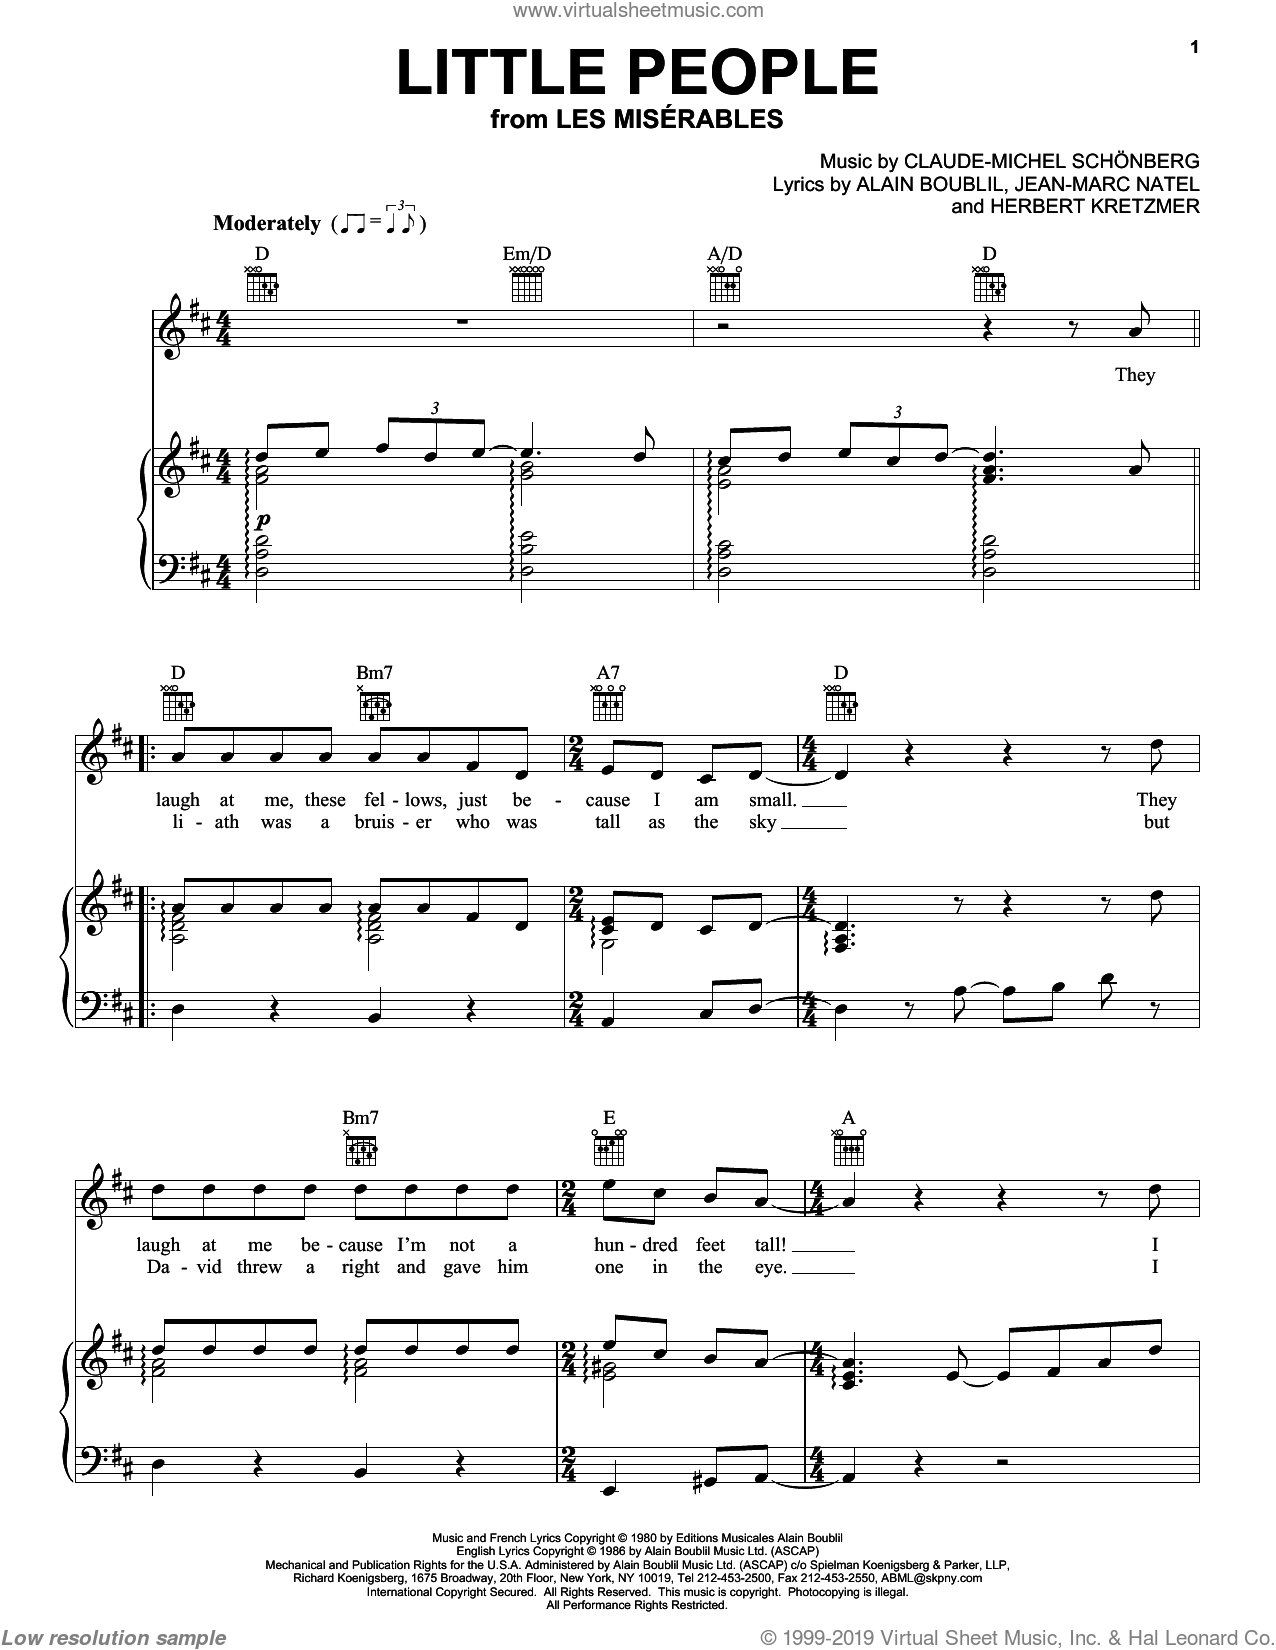 Little People sheet music for voice, piano or guitar by Alain Boublil, Les Miserables (Musical), Claude-Michel Schonberg and Herbert Kretzmer, intermediate voice, piano or guitar. Score Image Preview.